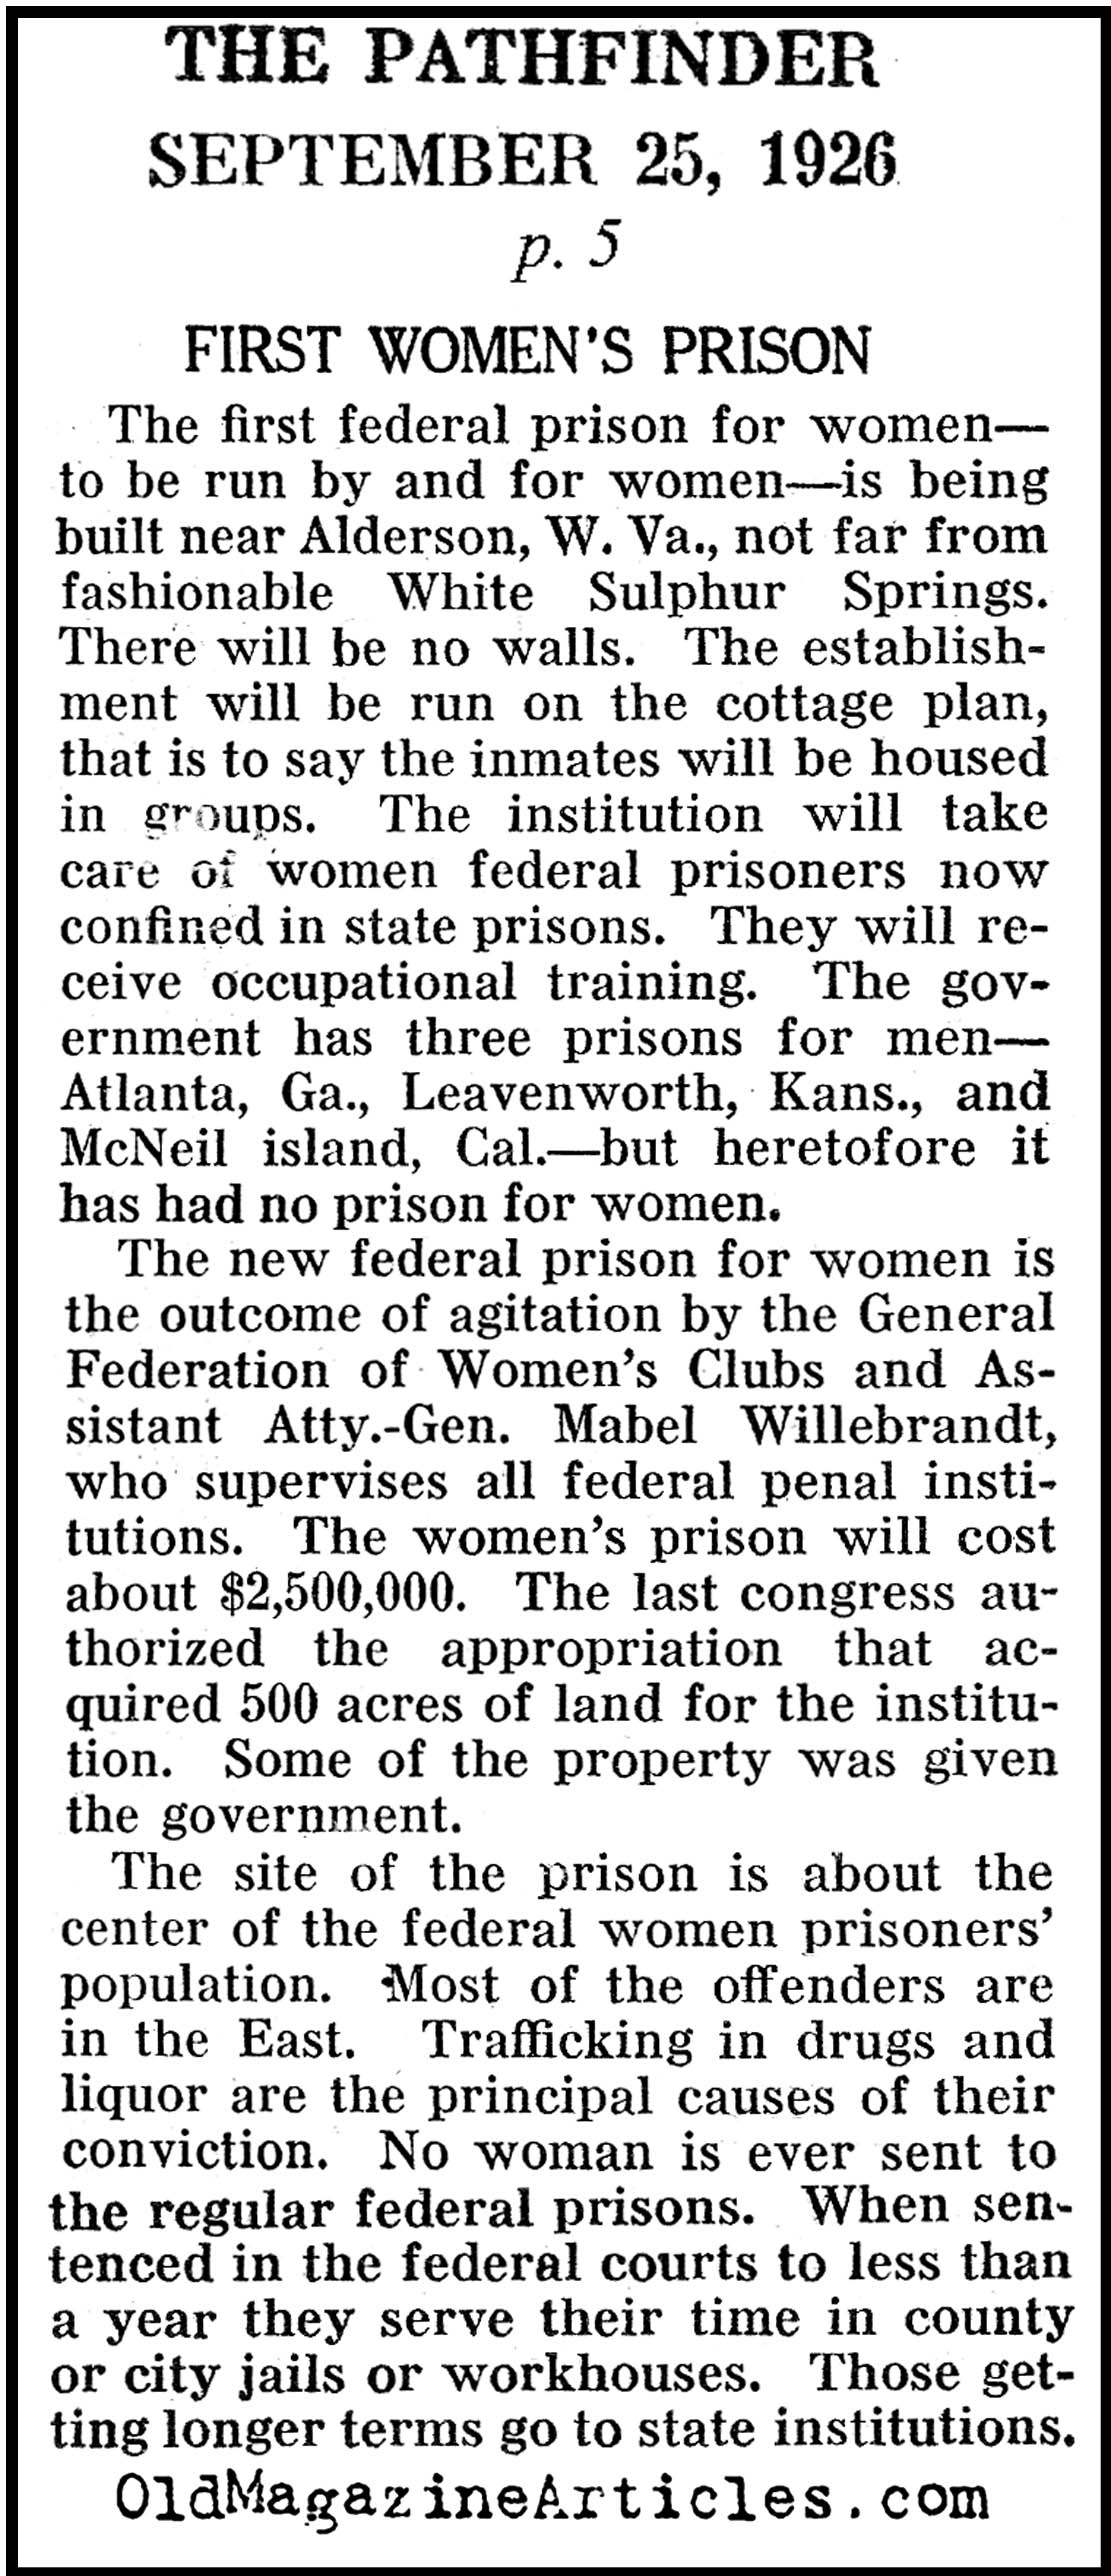 Prohibition Builds the First U.S. Prison for Women (Pathfinder Magazine, 1926)